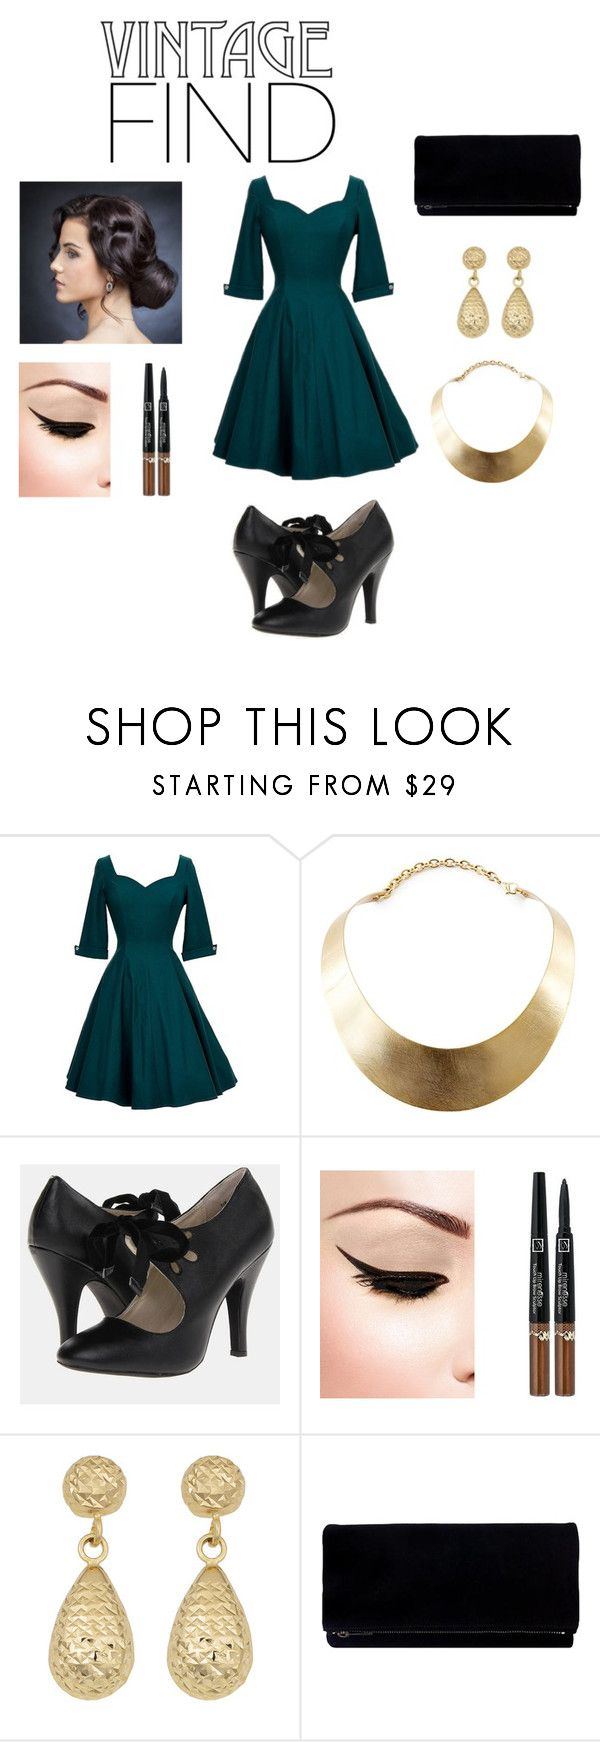 """""""After 5 Attire..."""" by honestlymodest ❤ liked on Polyvore featuring Unique Vintage, GUESS and Fremada"""